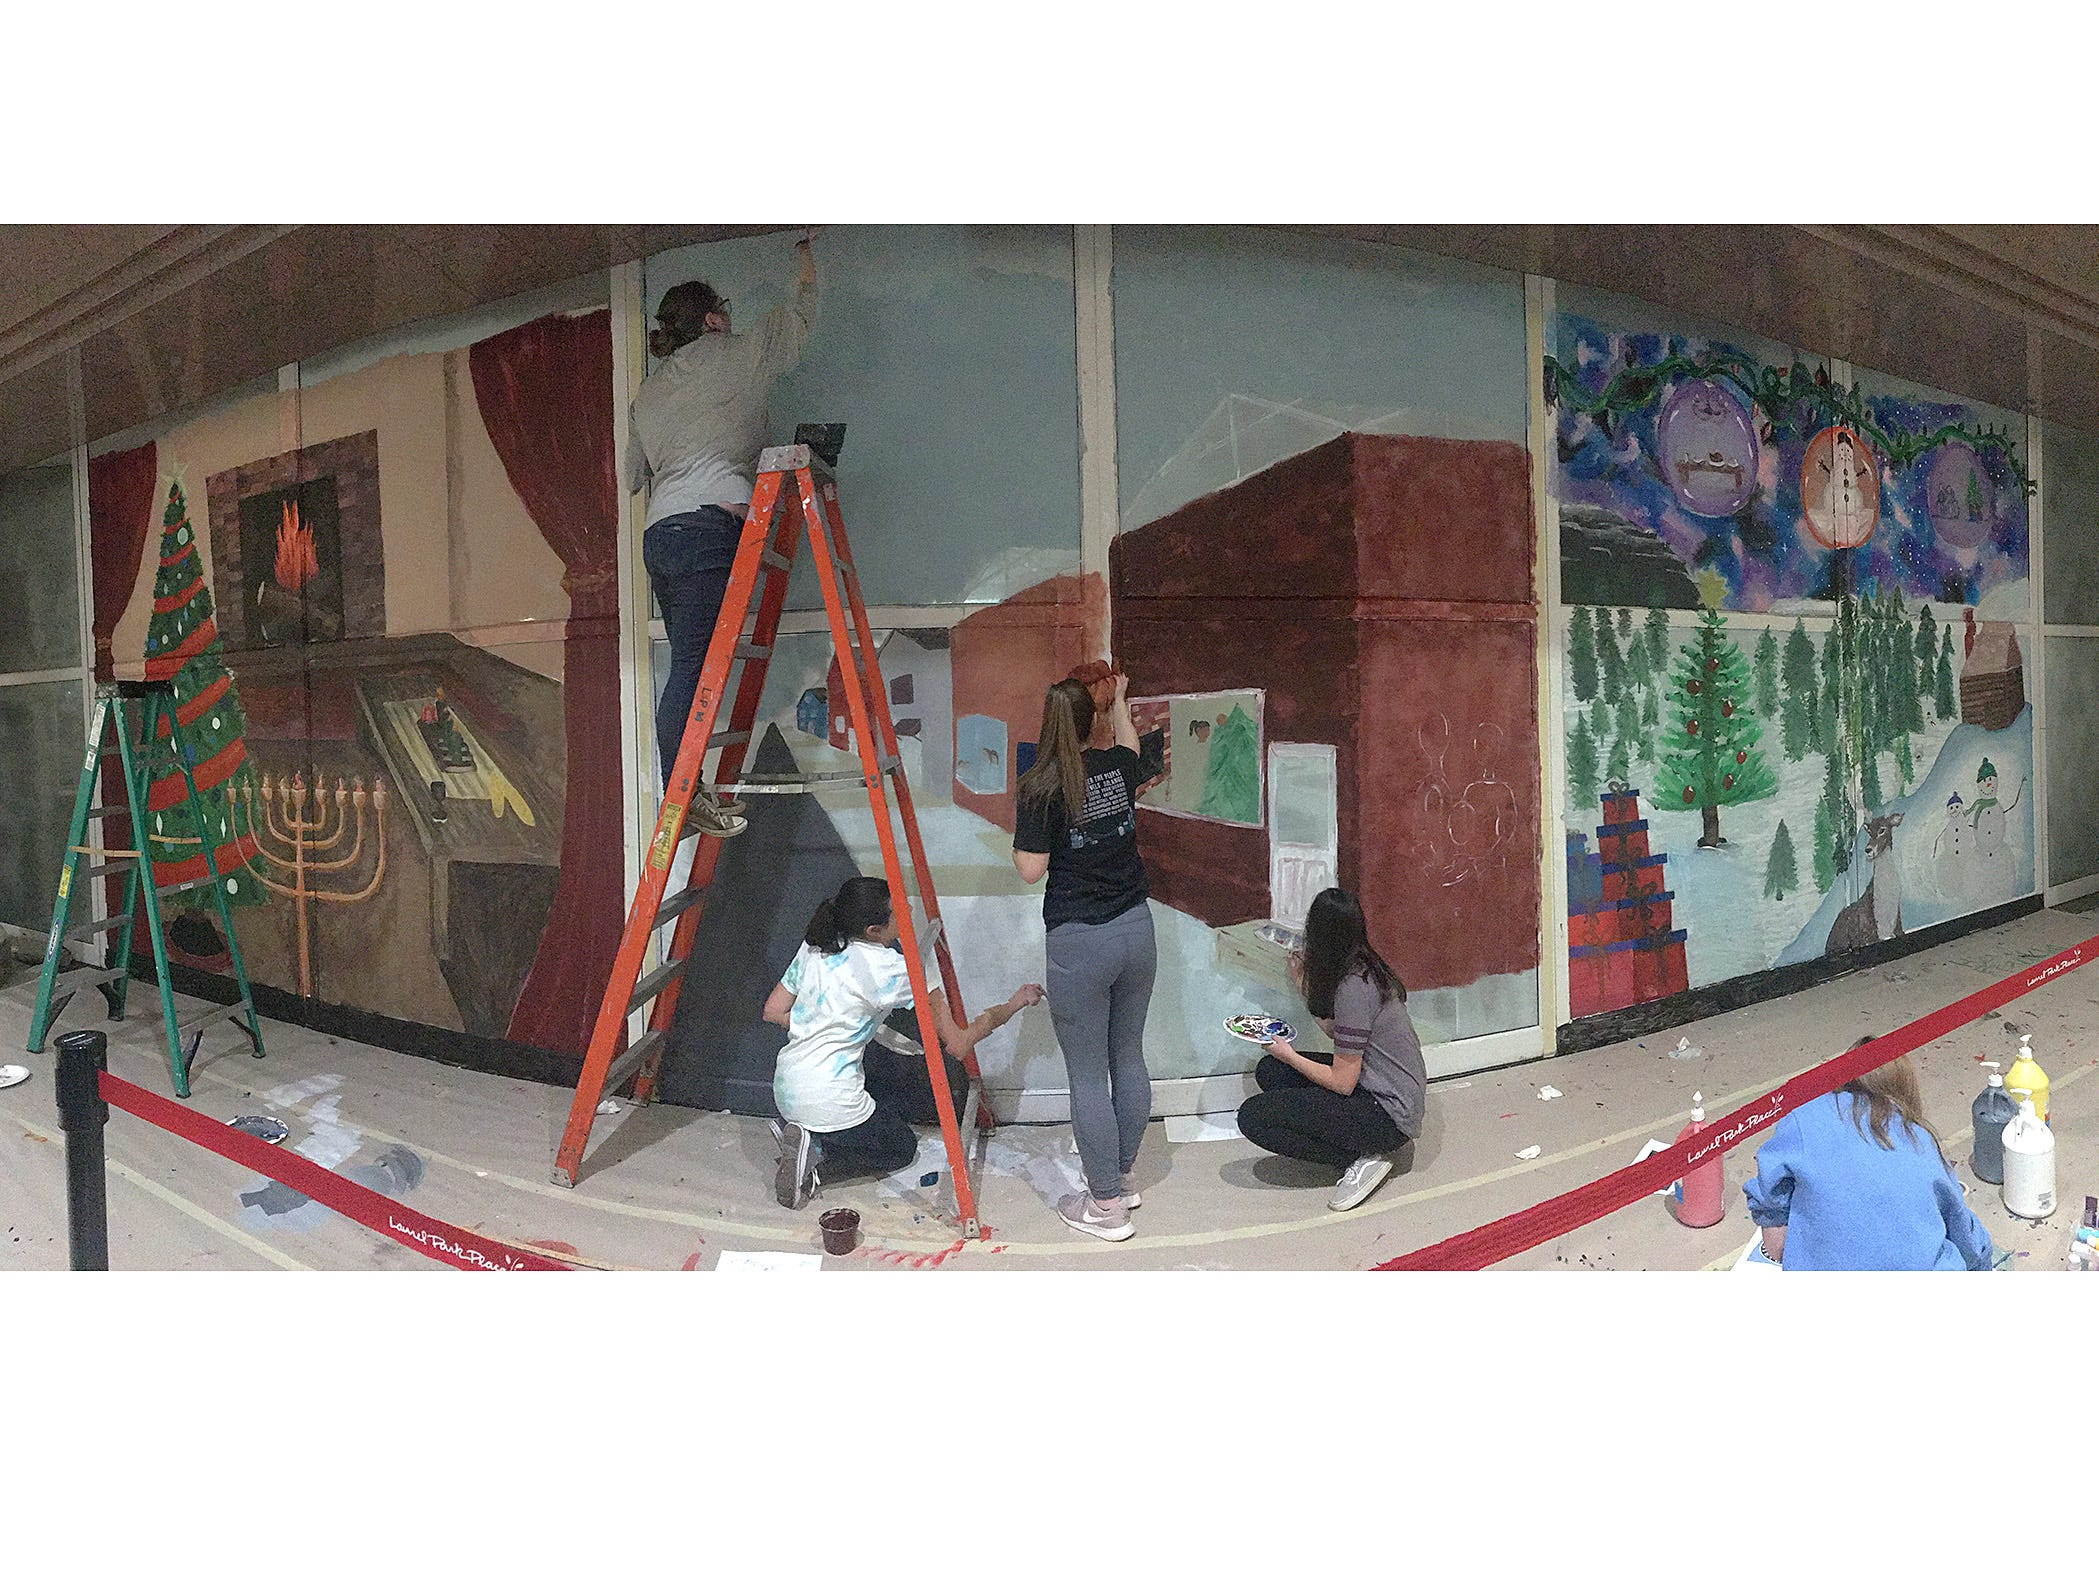 The mural is painted on the glass doors at the mall entrance of the former Carson's. Art students from all three Livonia high schools, Churchill, Stevenson, and Franklin, contributed their skills to the project.